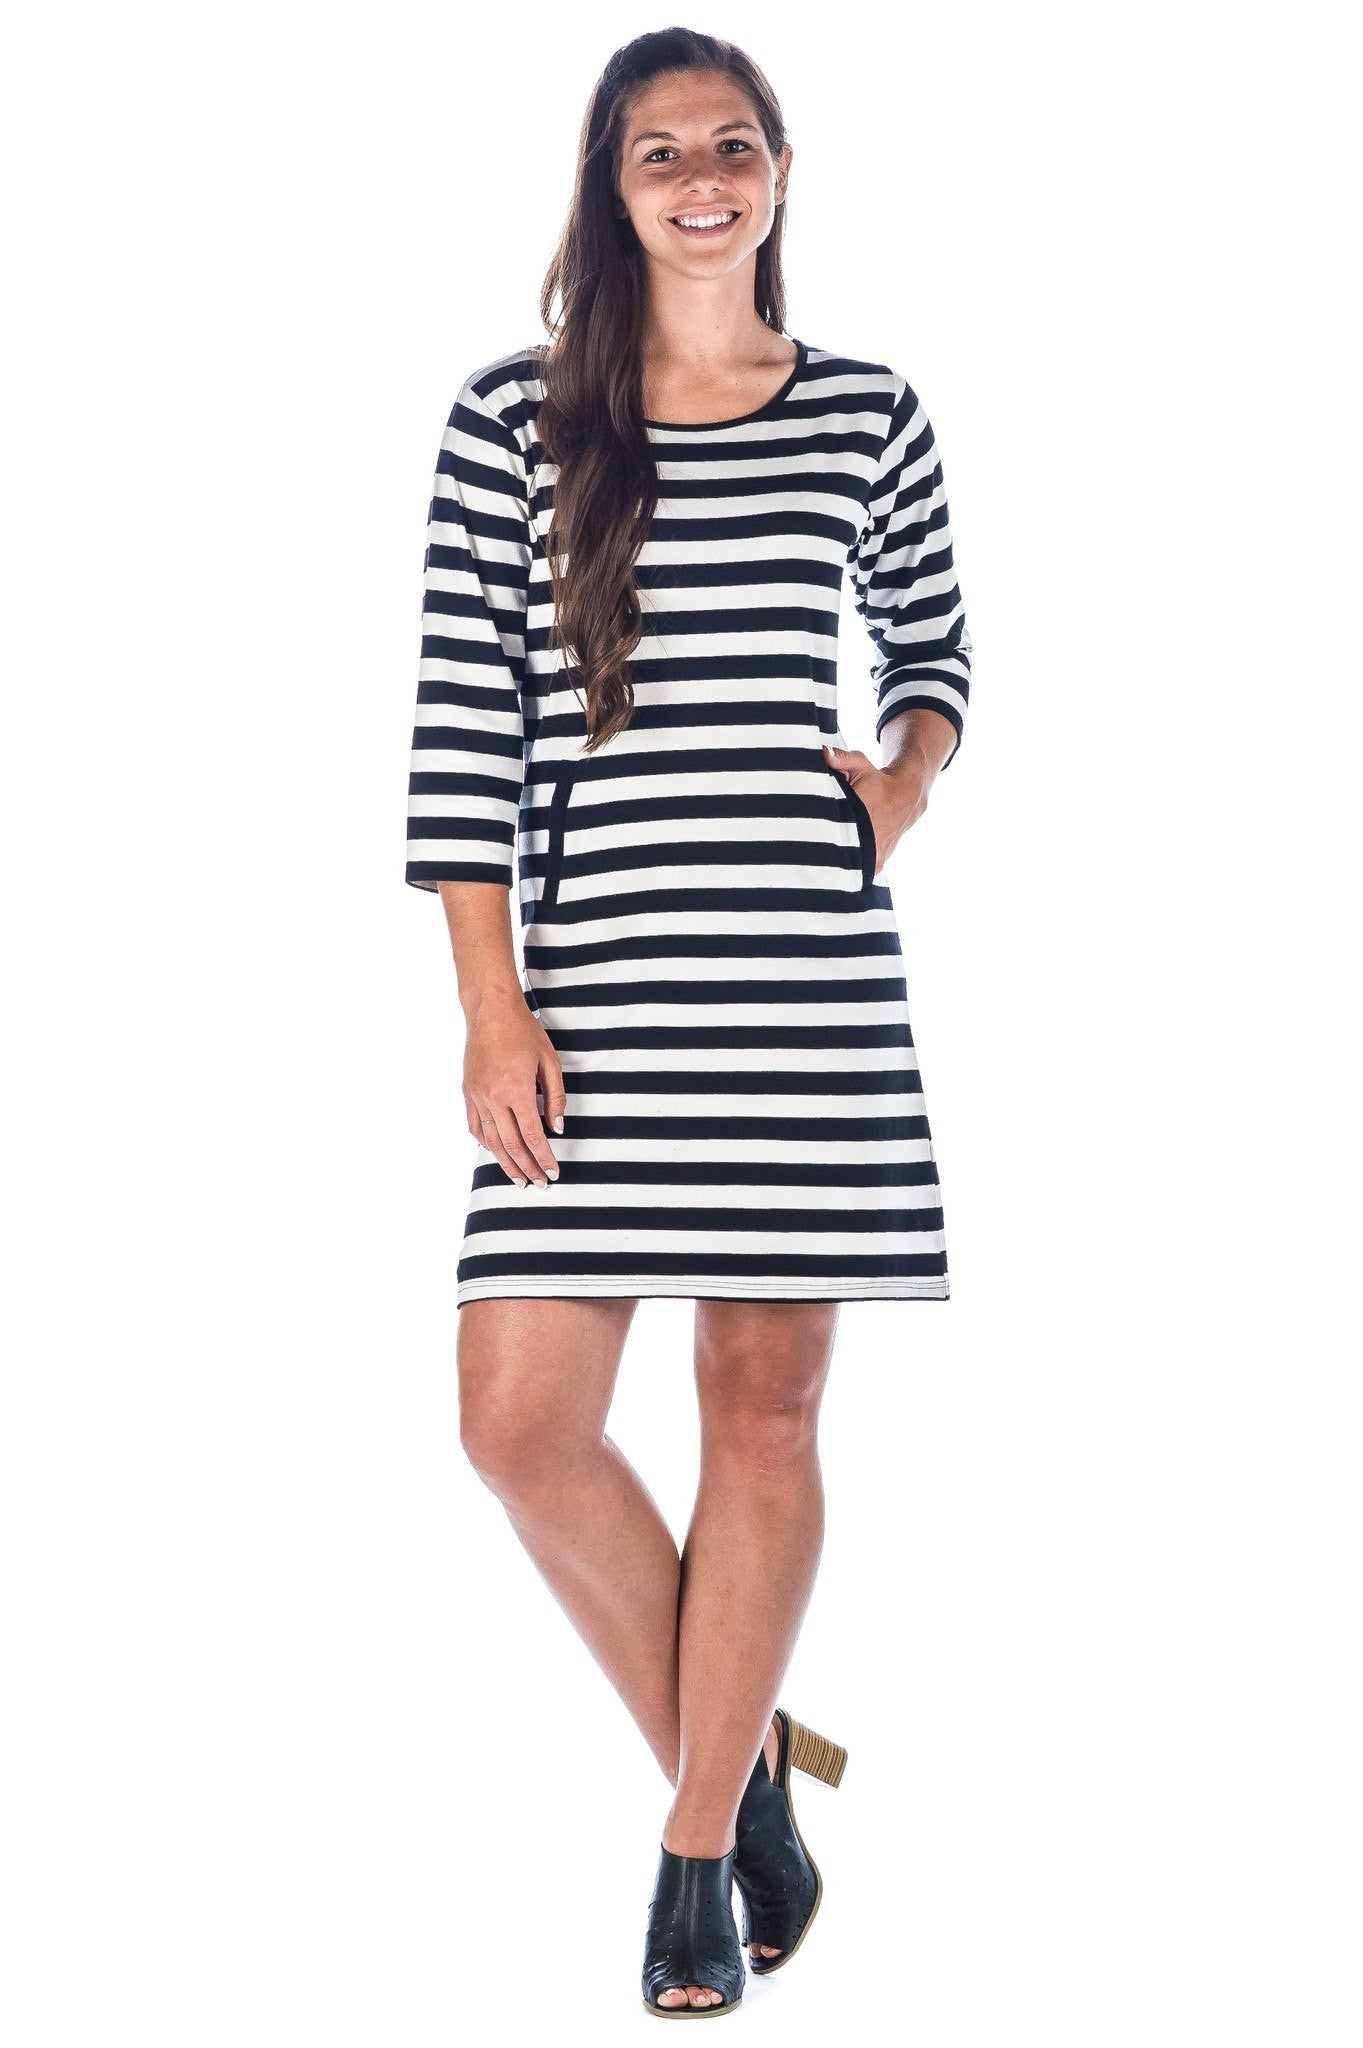 Women's Premium Cotton Knit Dress